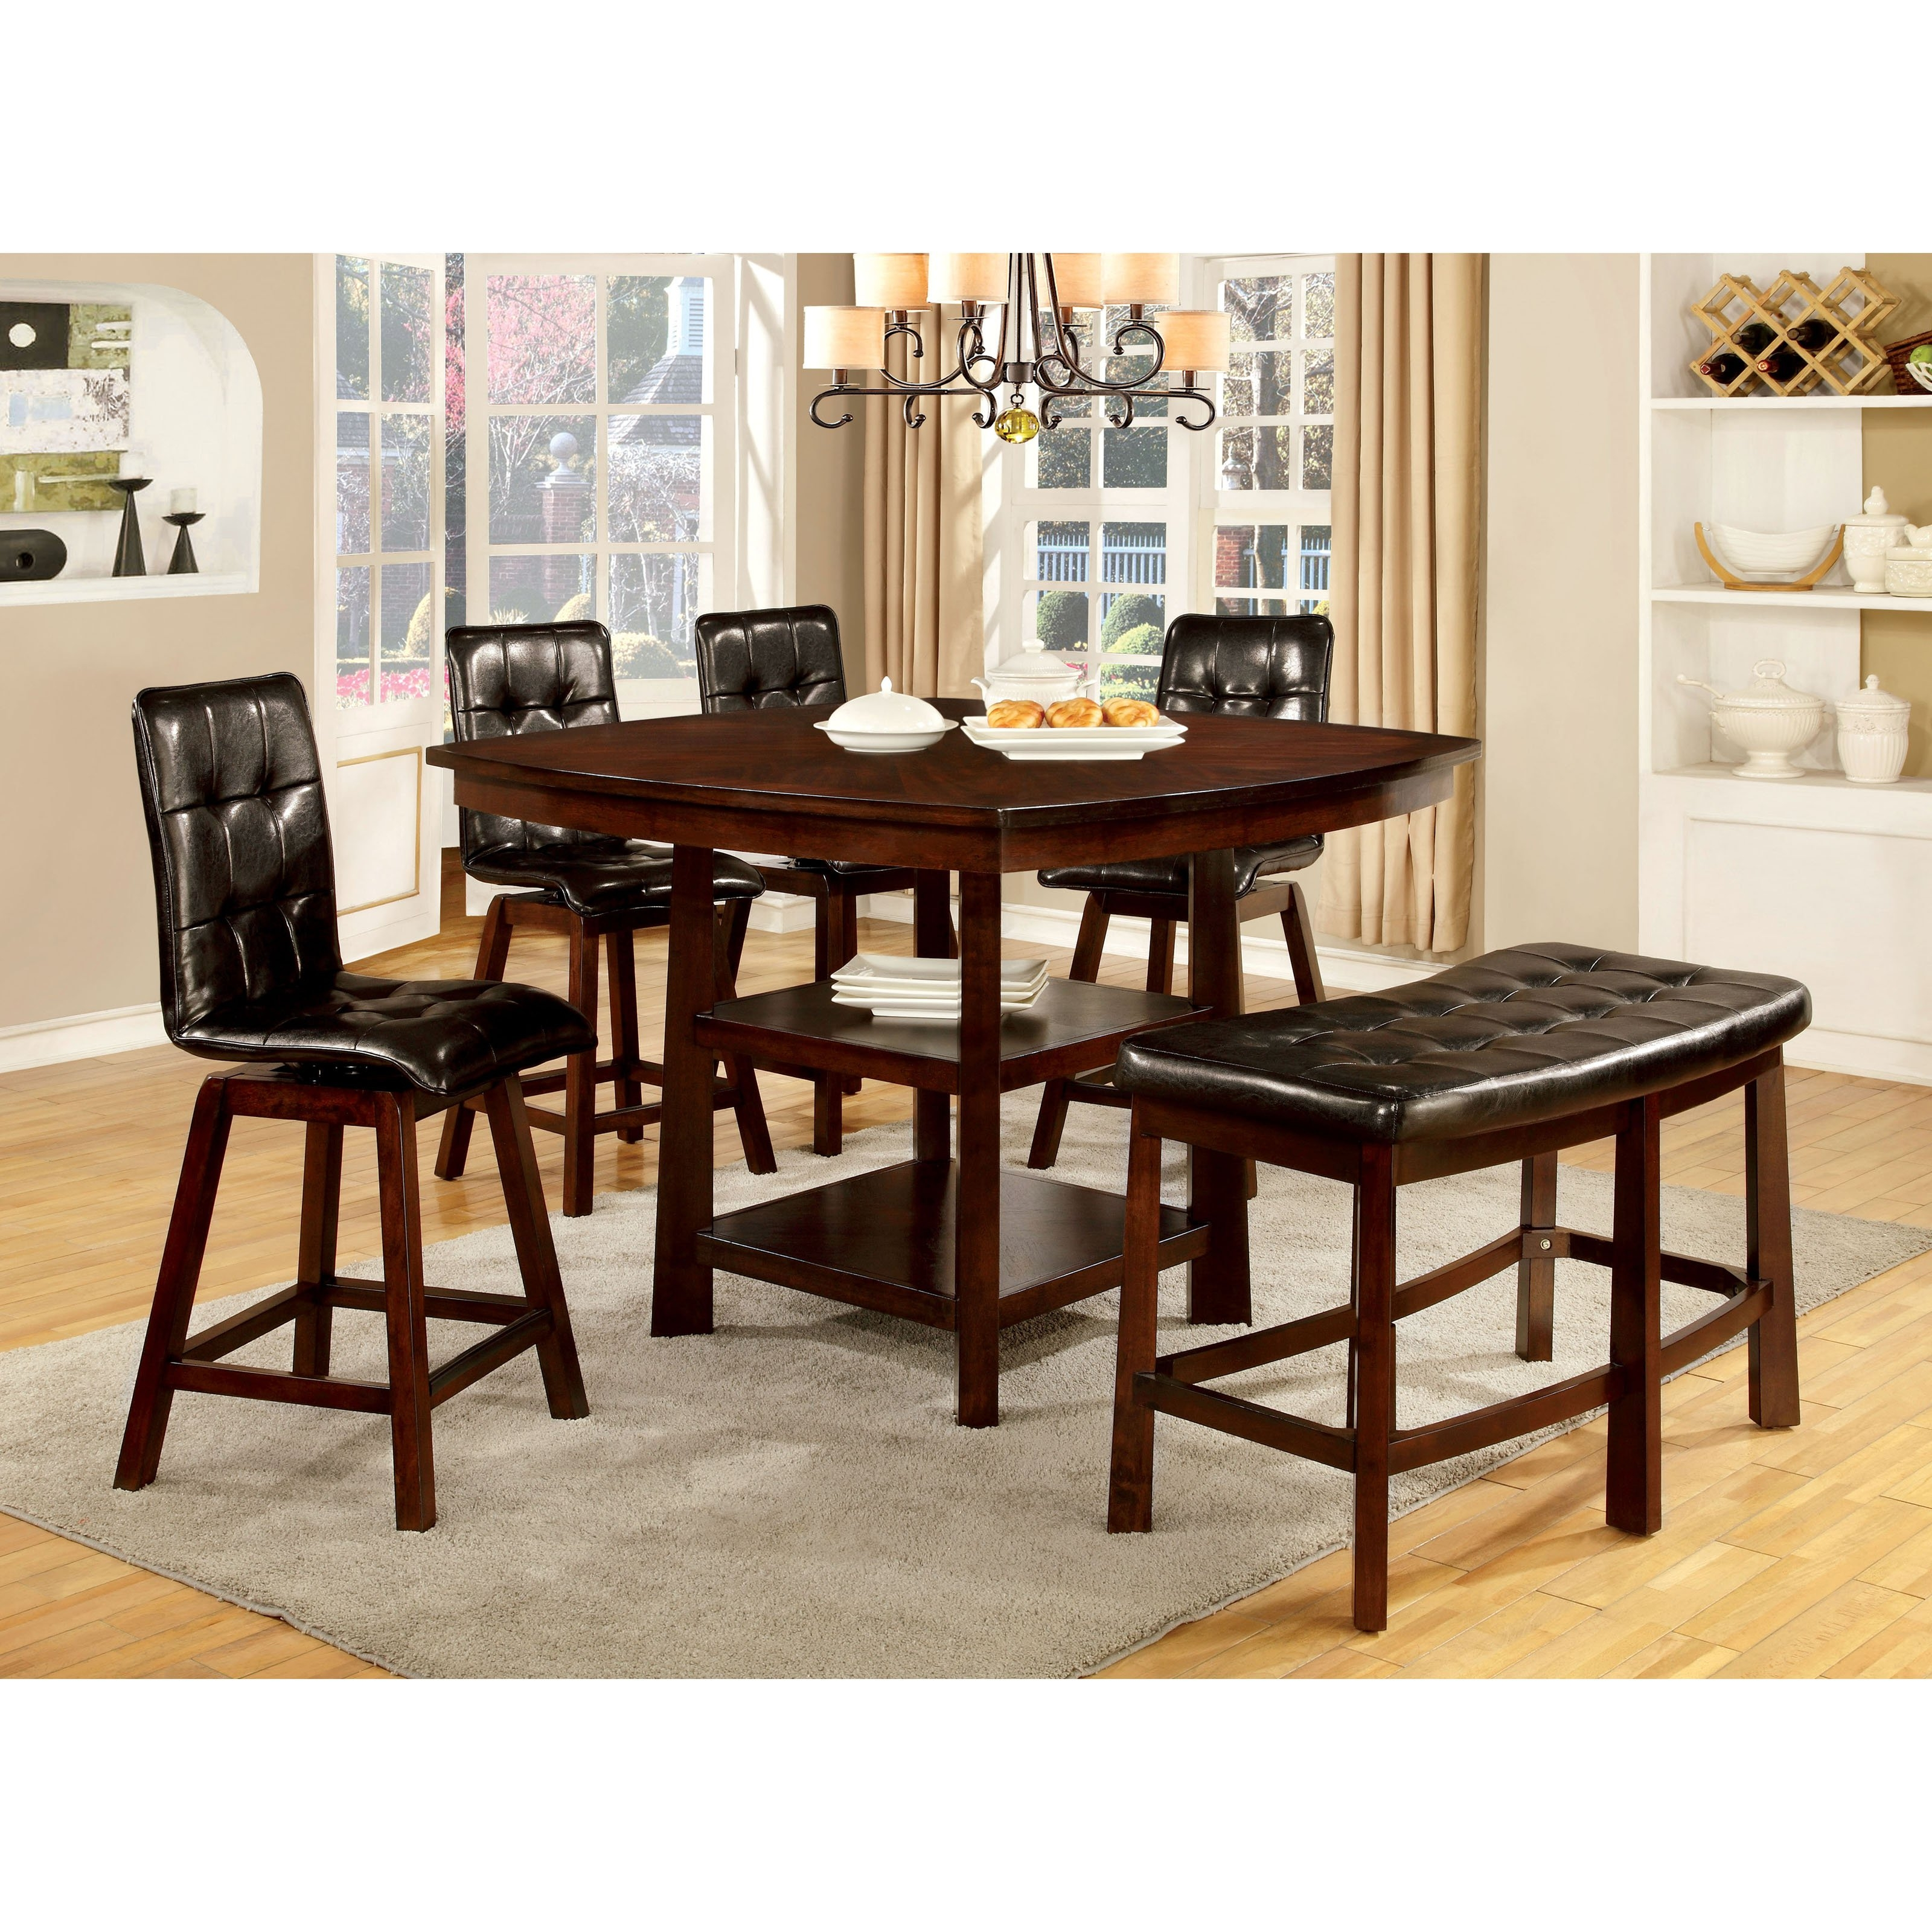 furniture of america rathbun modern 6 piece counter height dining table set with swivel chairs